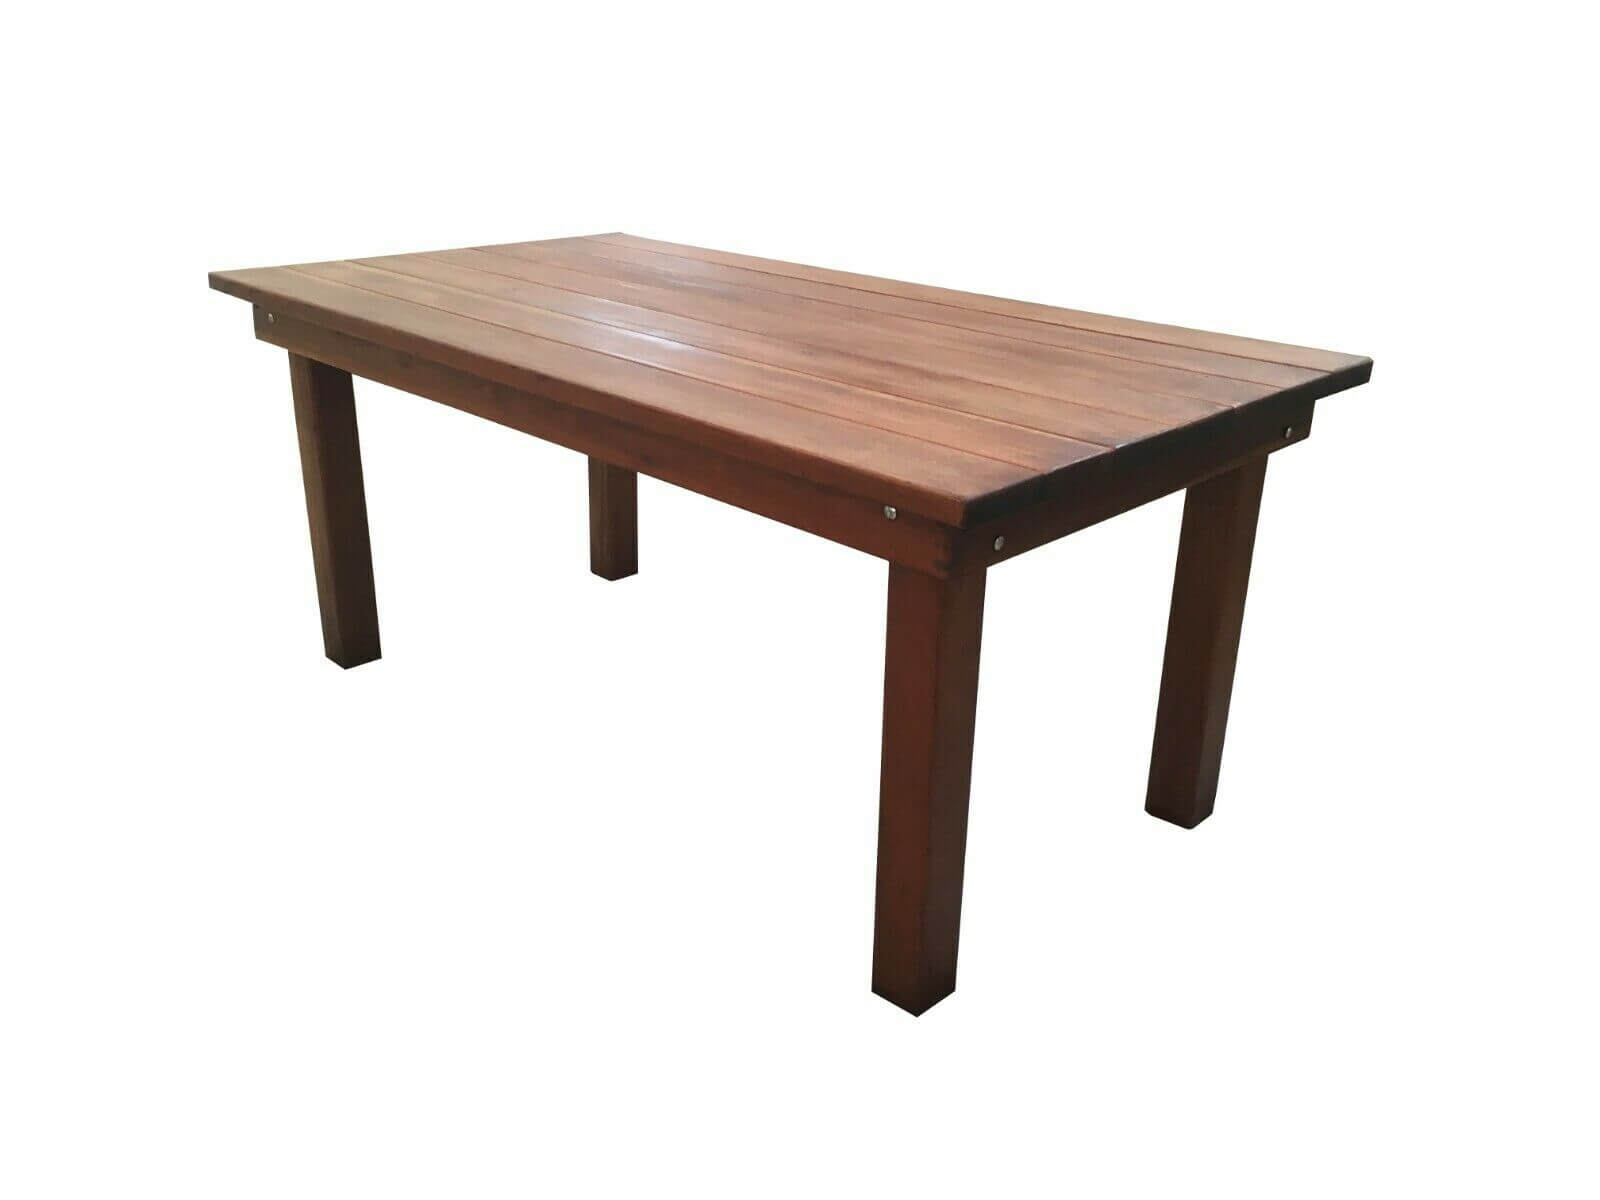 Redwood farmhouse dining table